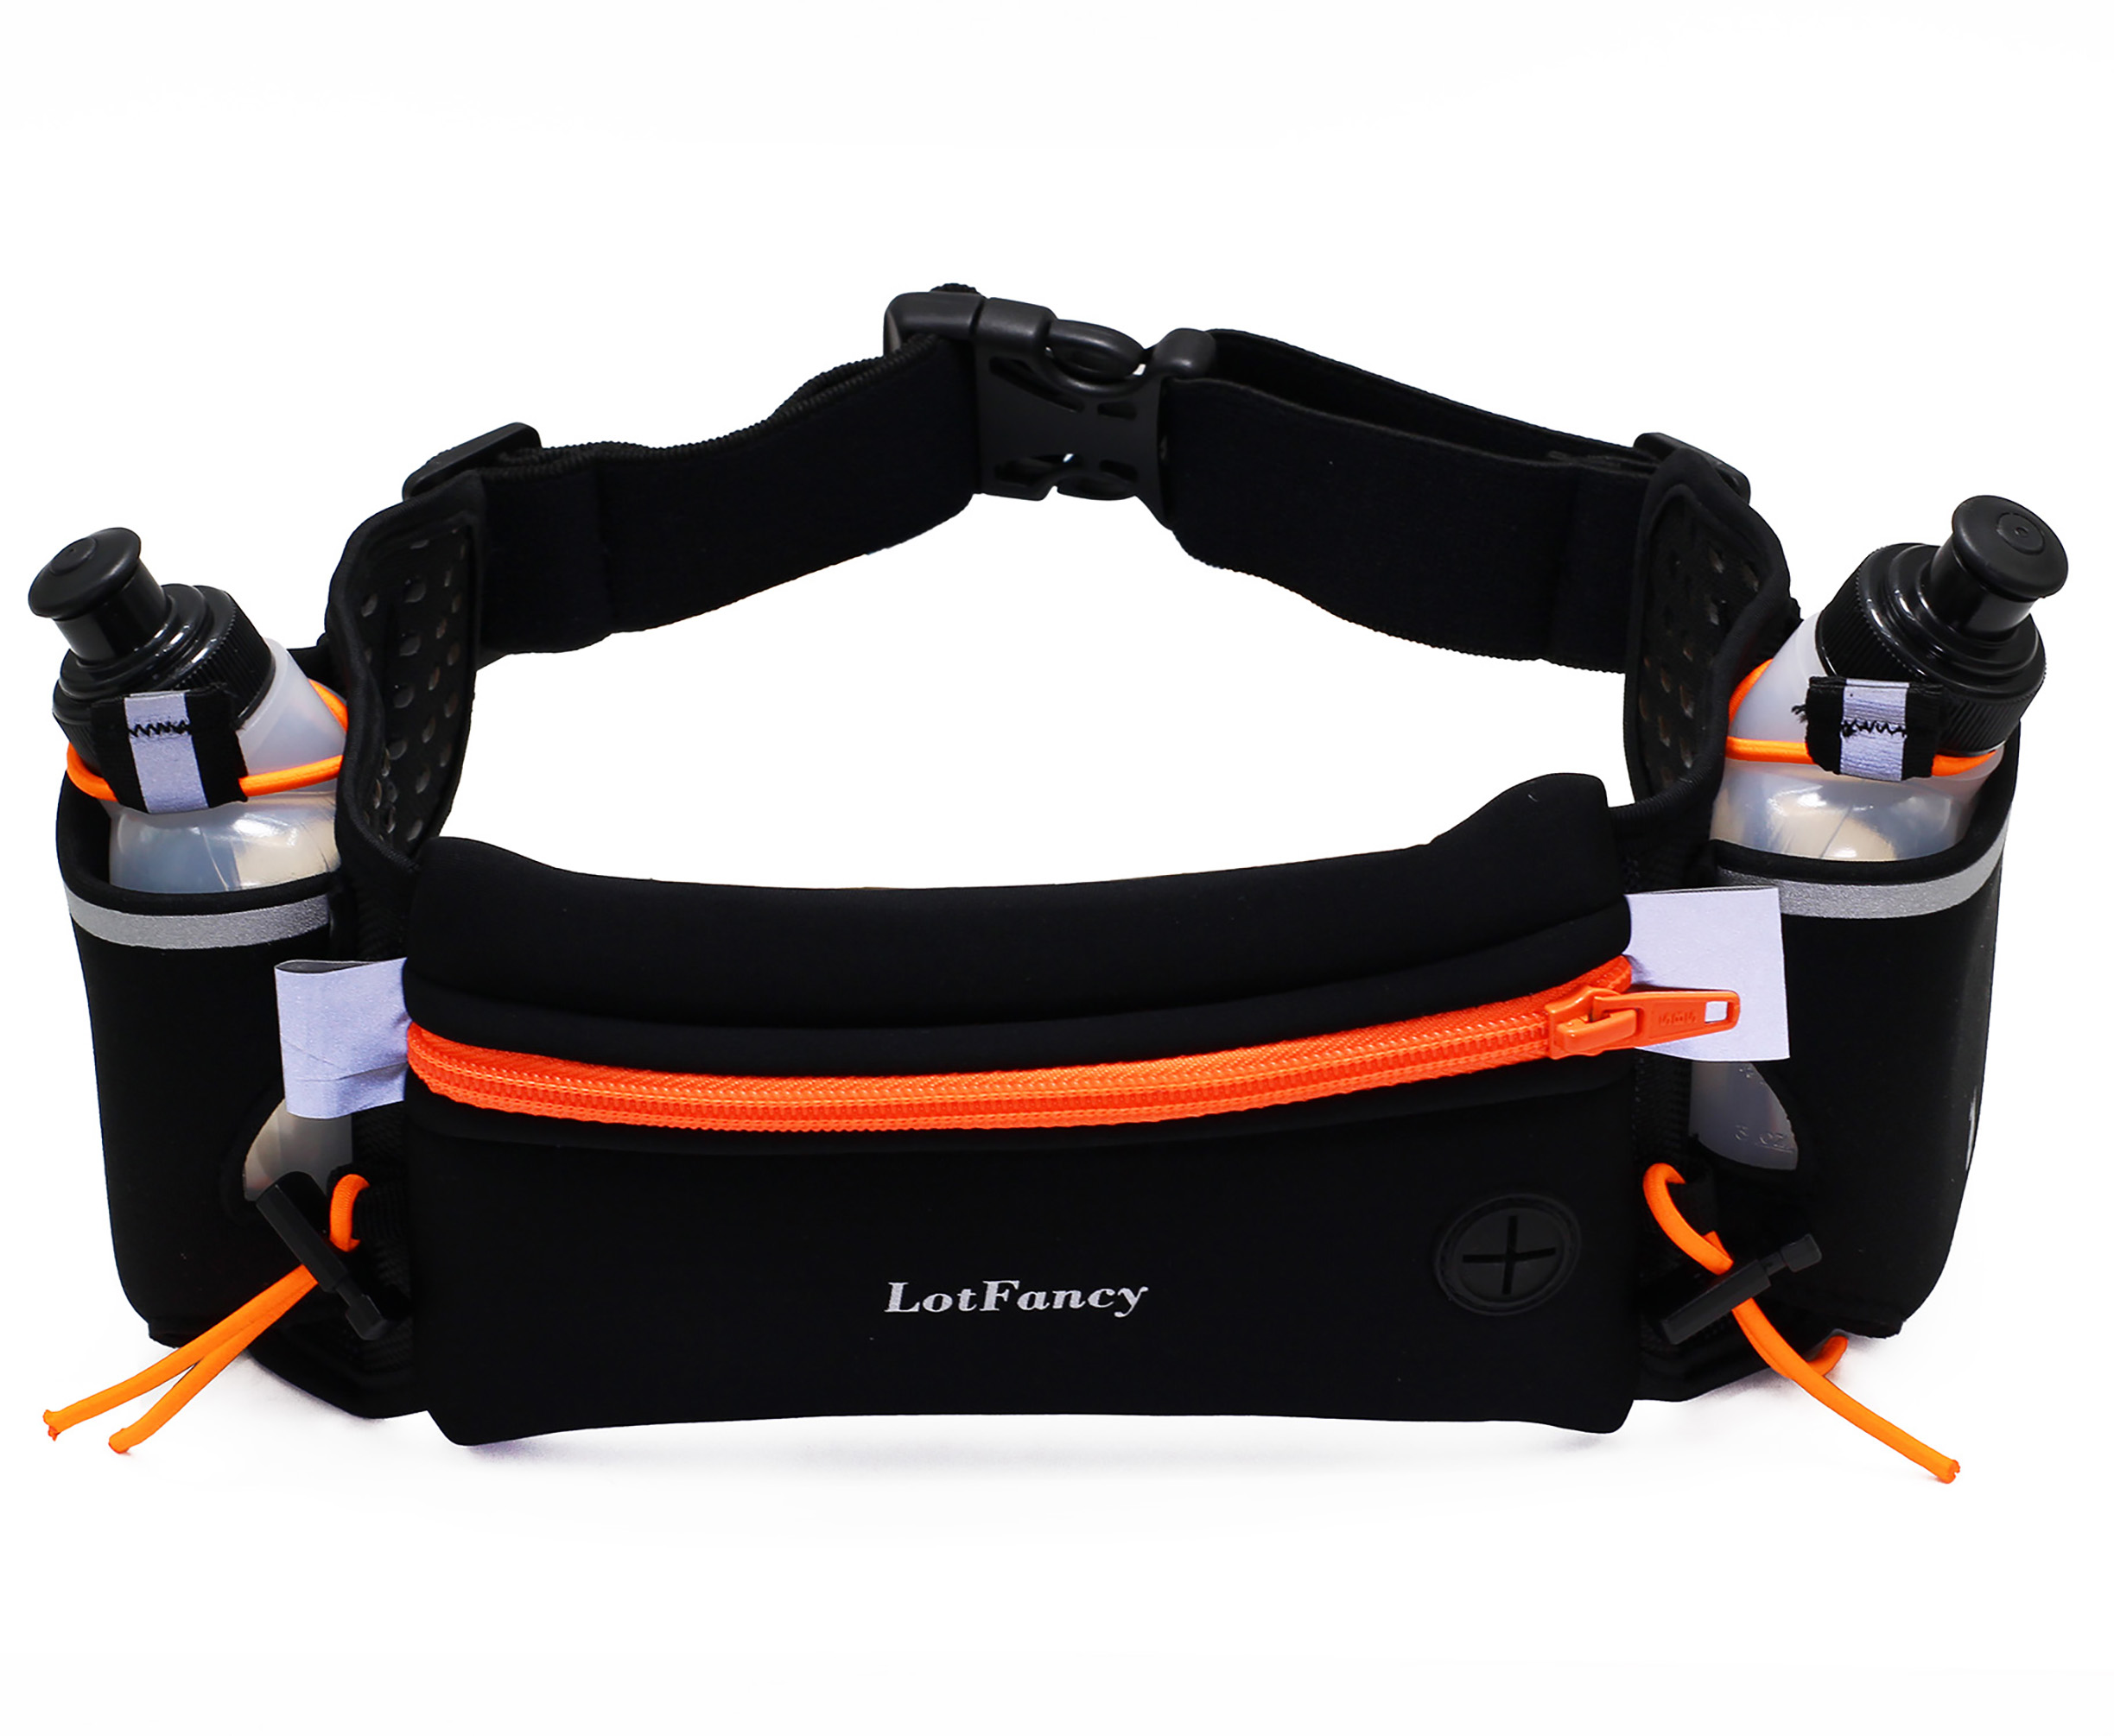 LotFancy Running Hydration Fuel Belt with Water Bottle (BPA Free) for Women and Men Waist Pack for Marathon, Race, Fits... by